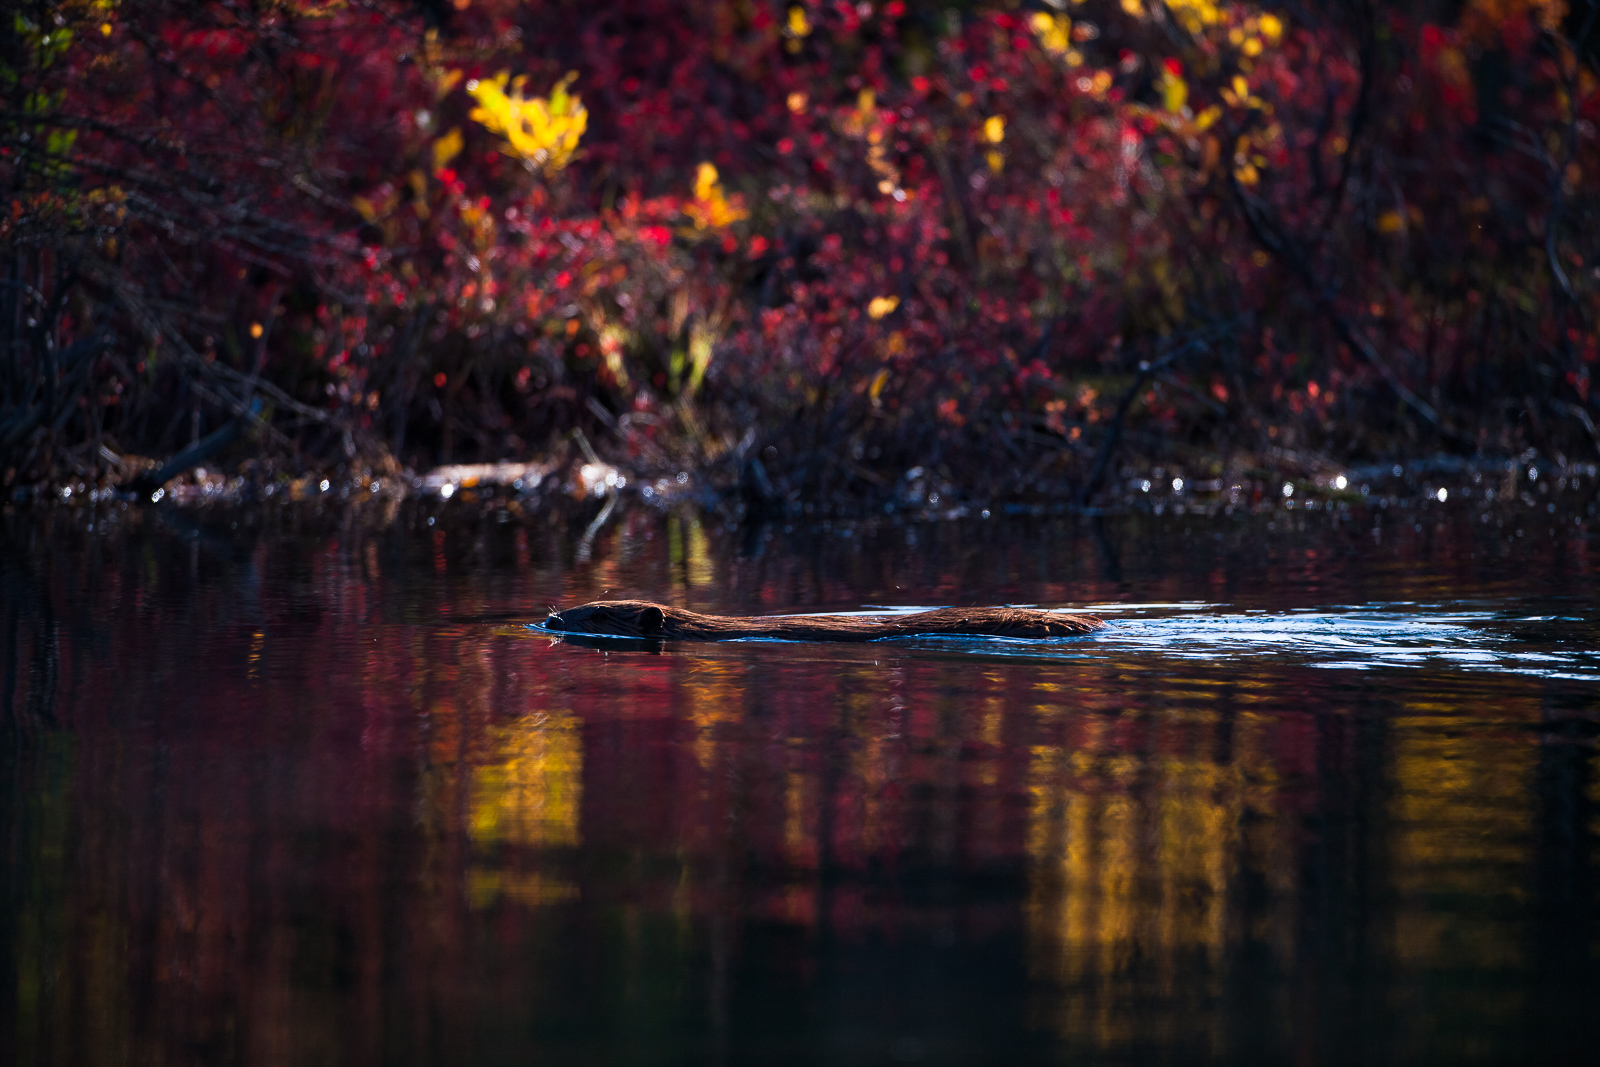 Working In Color,Fall,Landscape,Denali National Park, Alaska,reflection, water,trees, photo